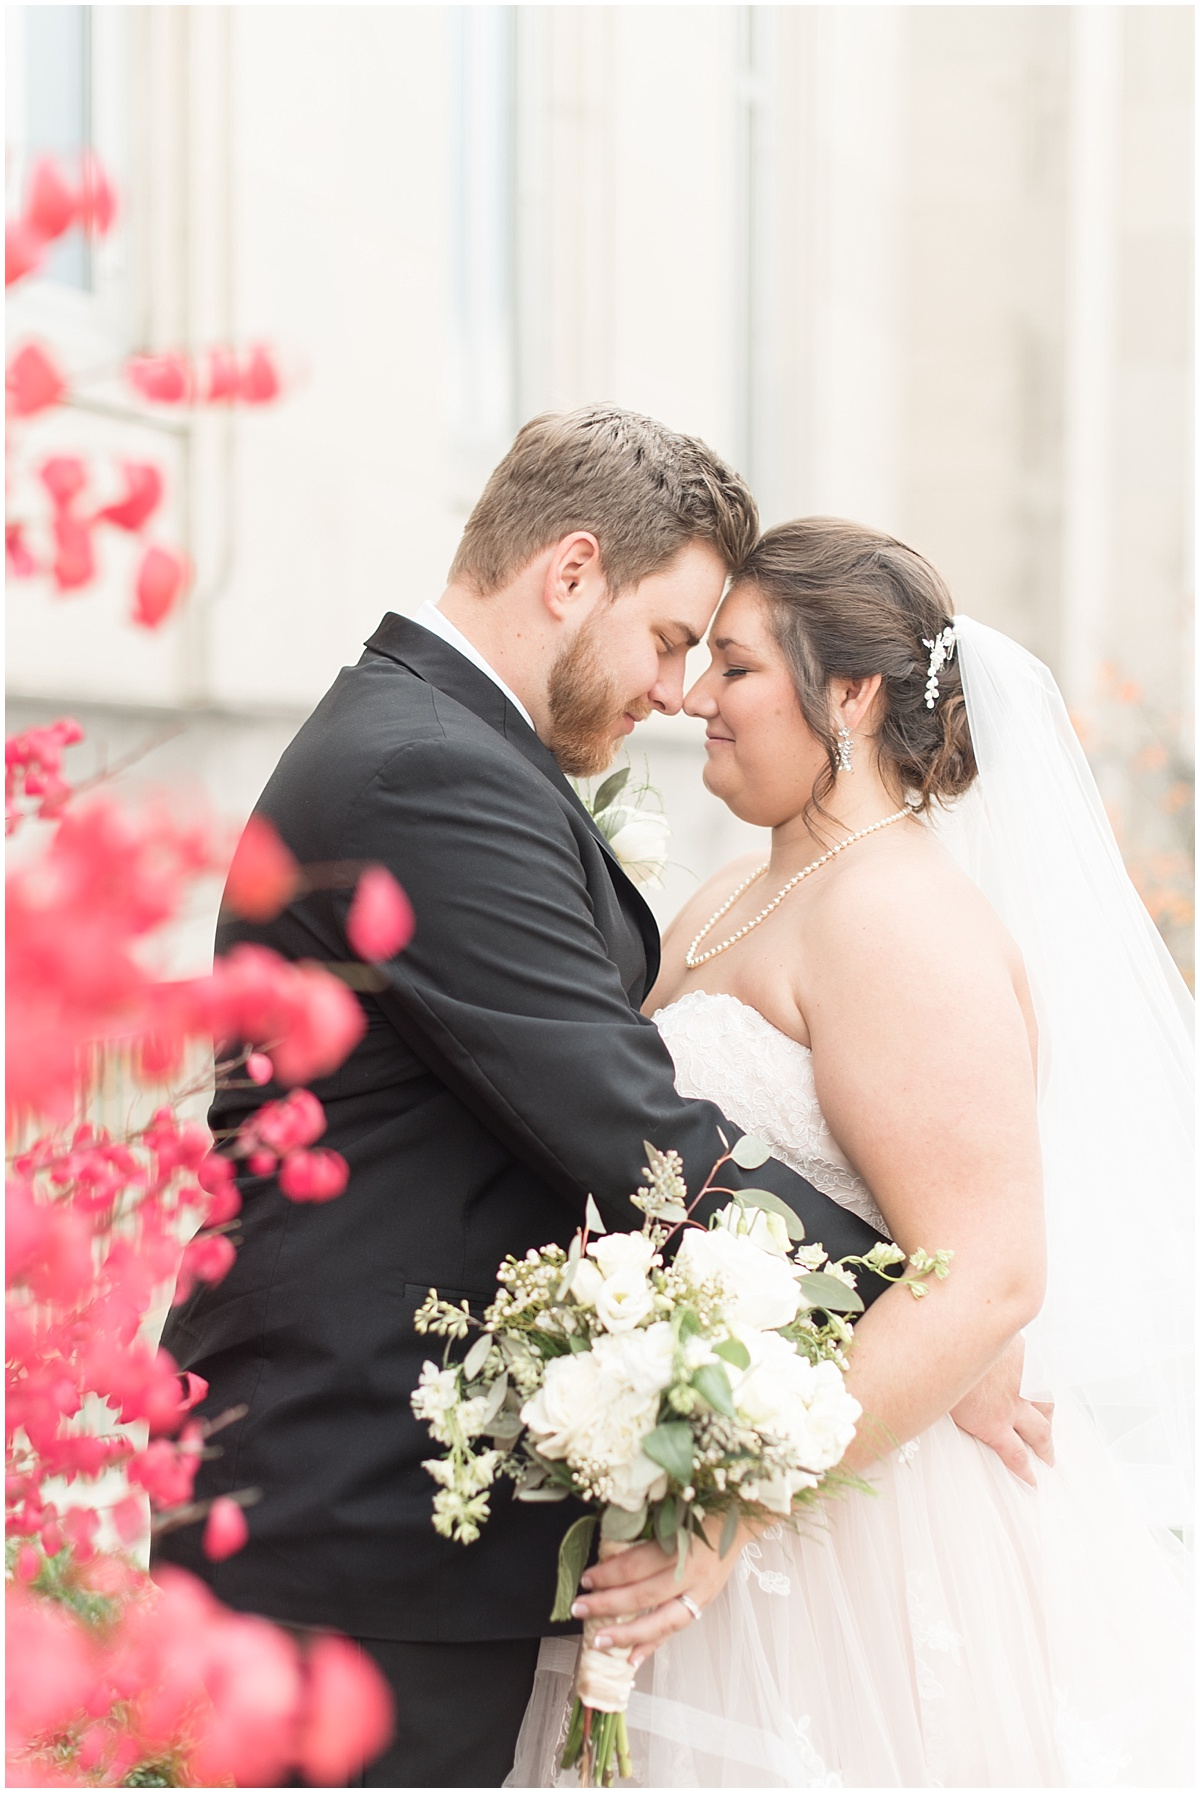 Chris and Ashley Peterson - Wedding at the Jasper County Fairgrounds in Rensselaer, Indiana97.jpg